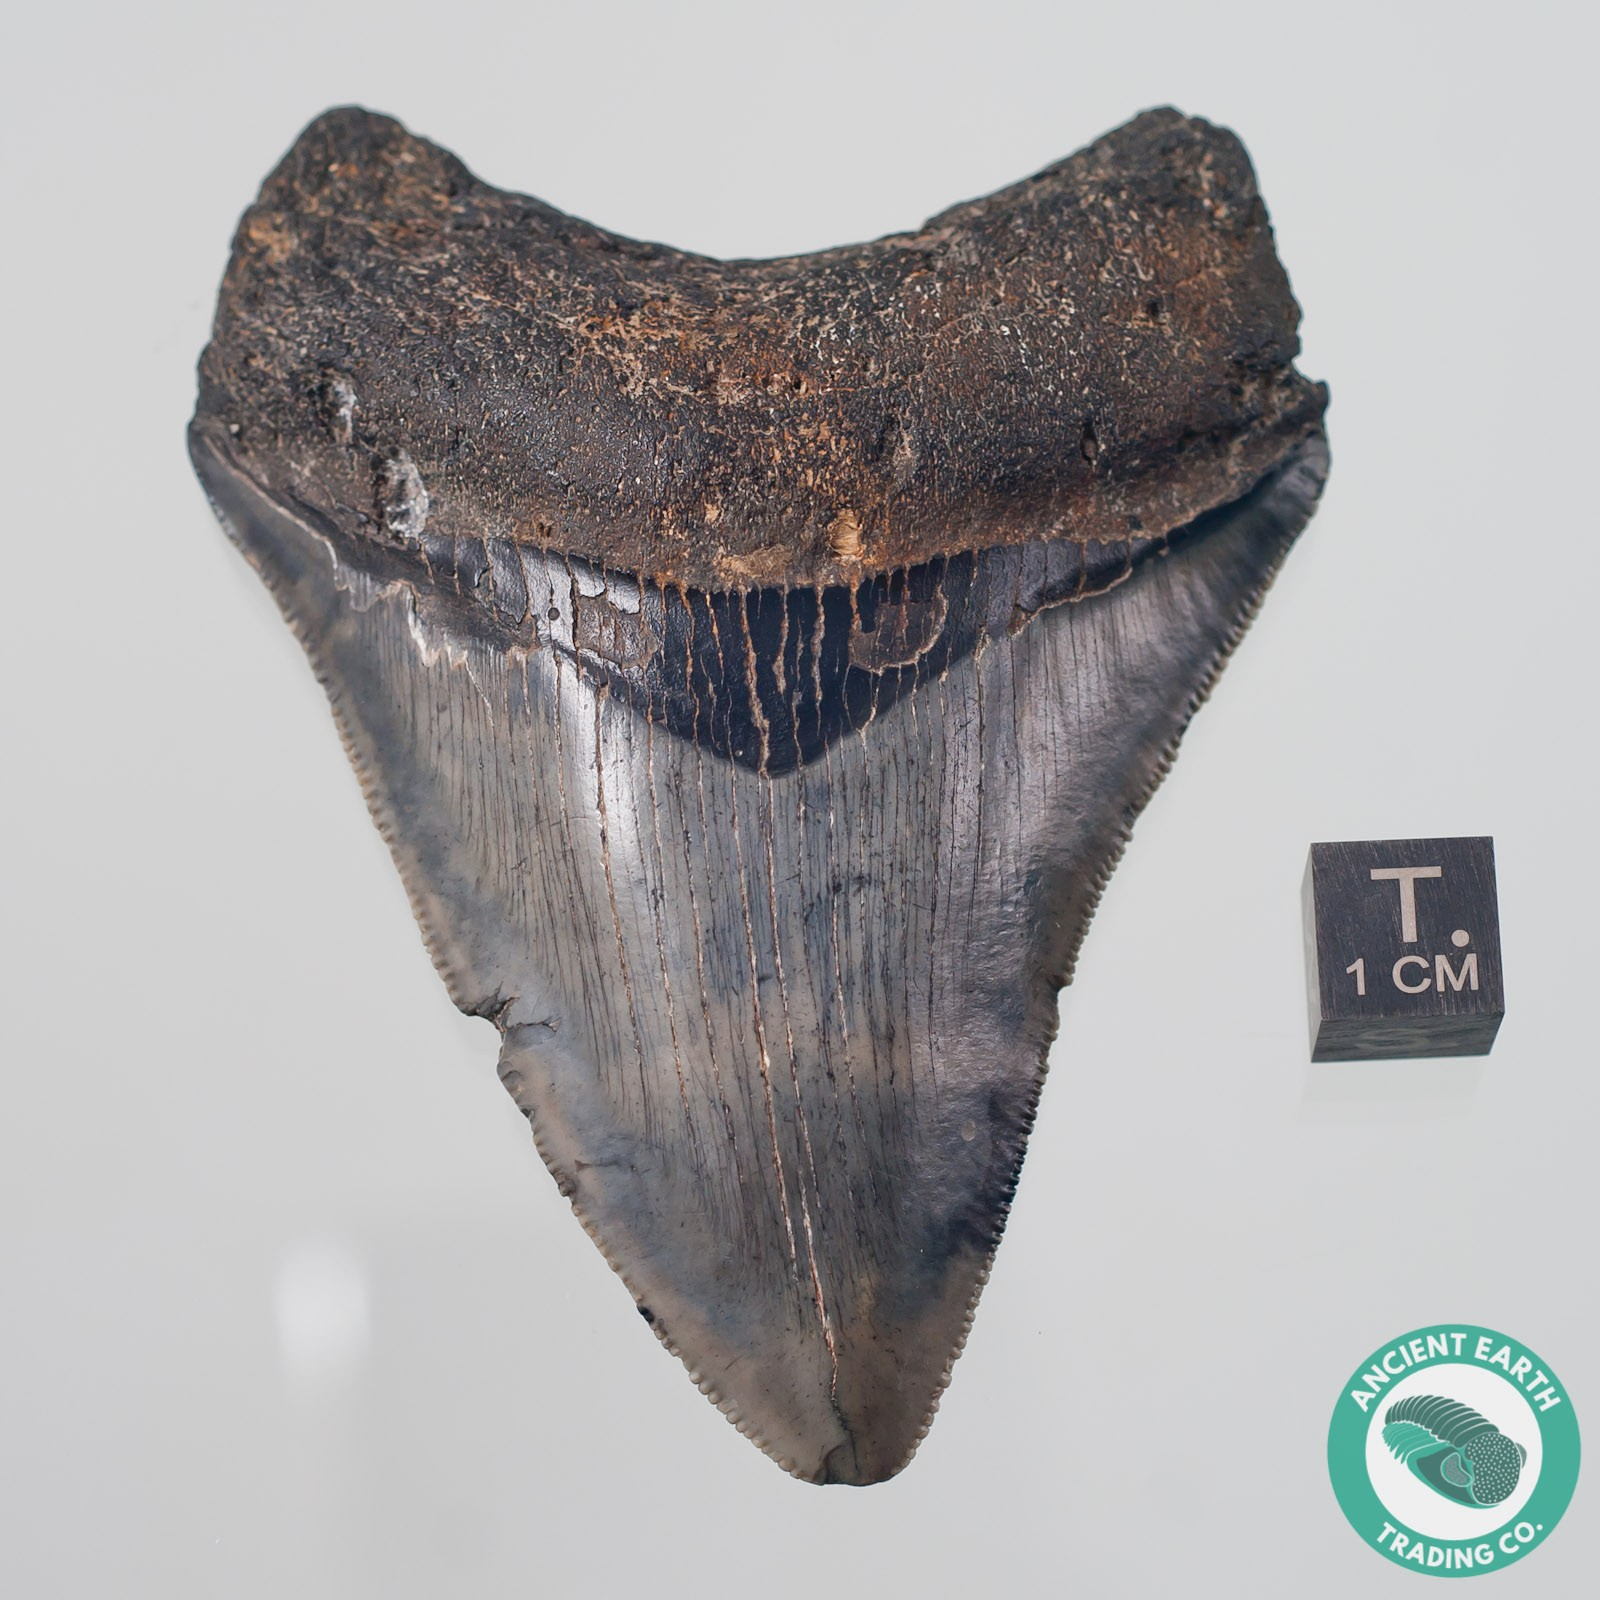 3.4 inch Megalodon Fossil Shark Tooth from South Carolina